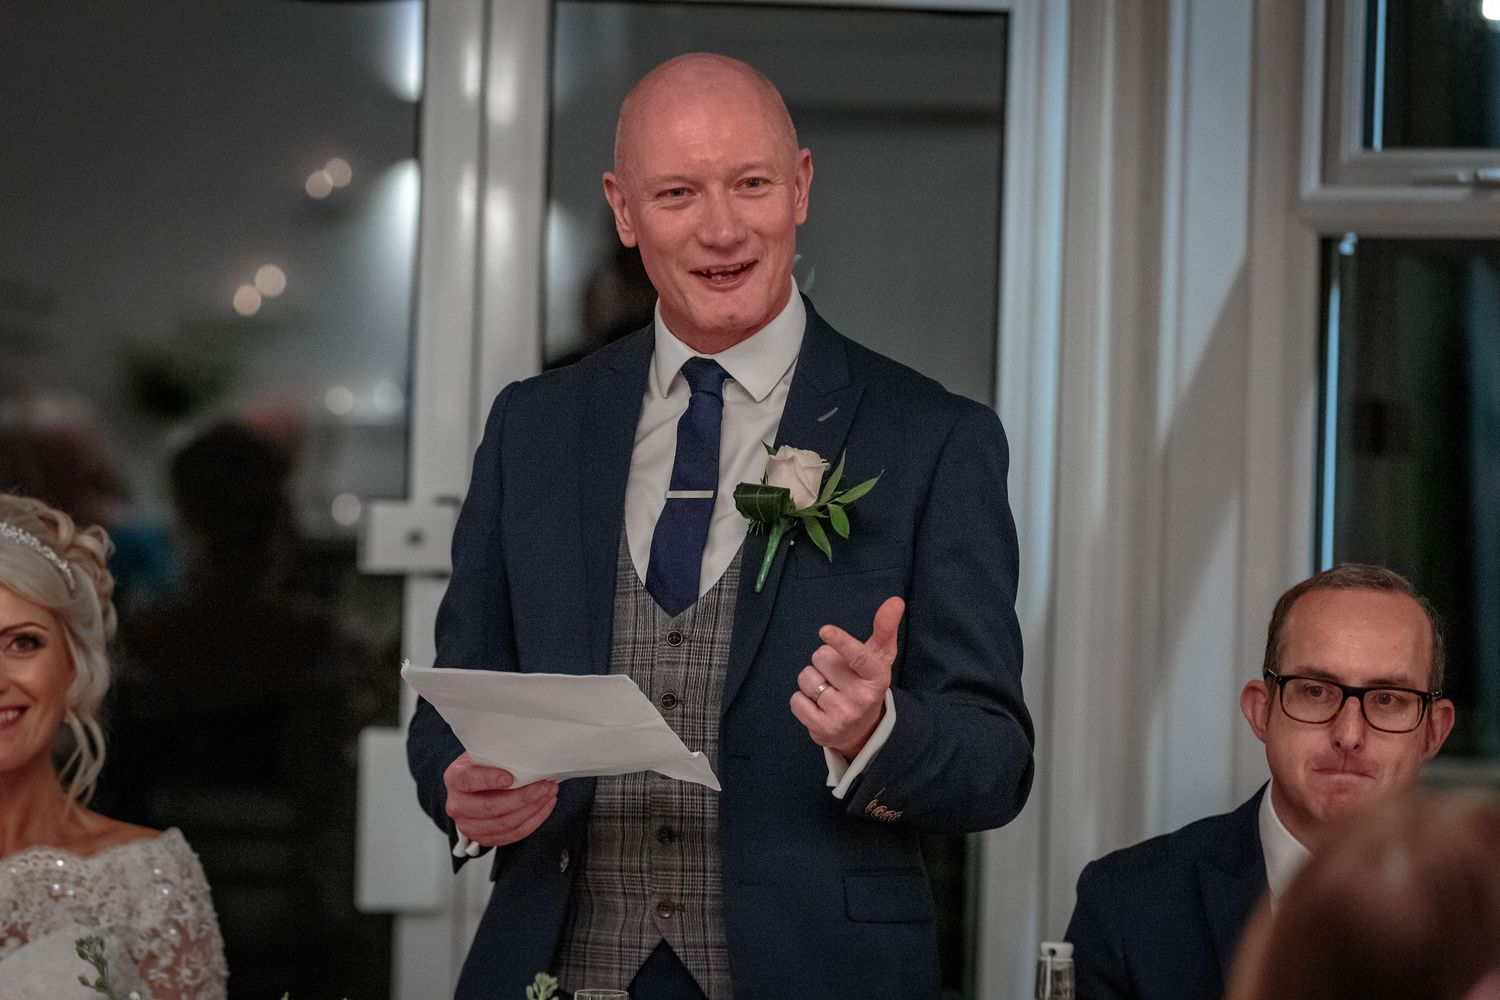 the groom in full flow during his wedding speech